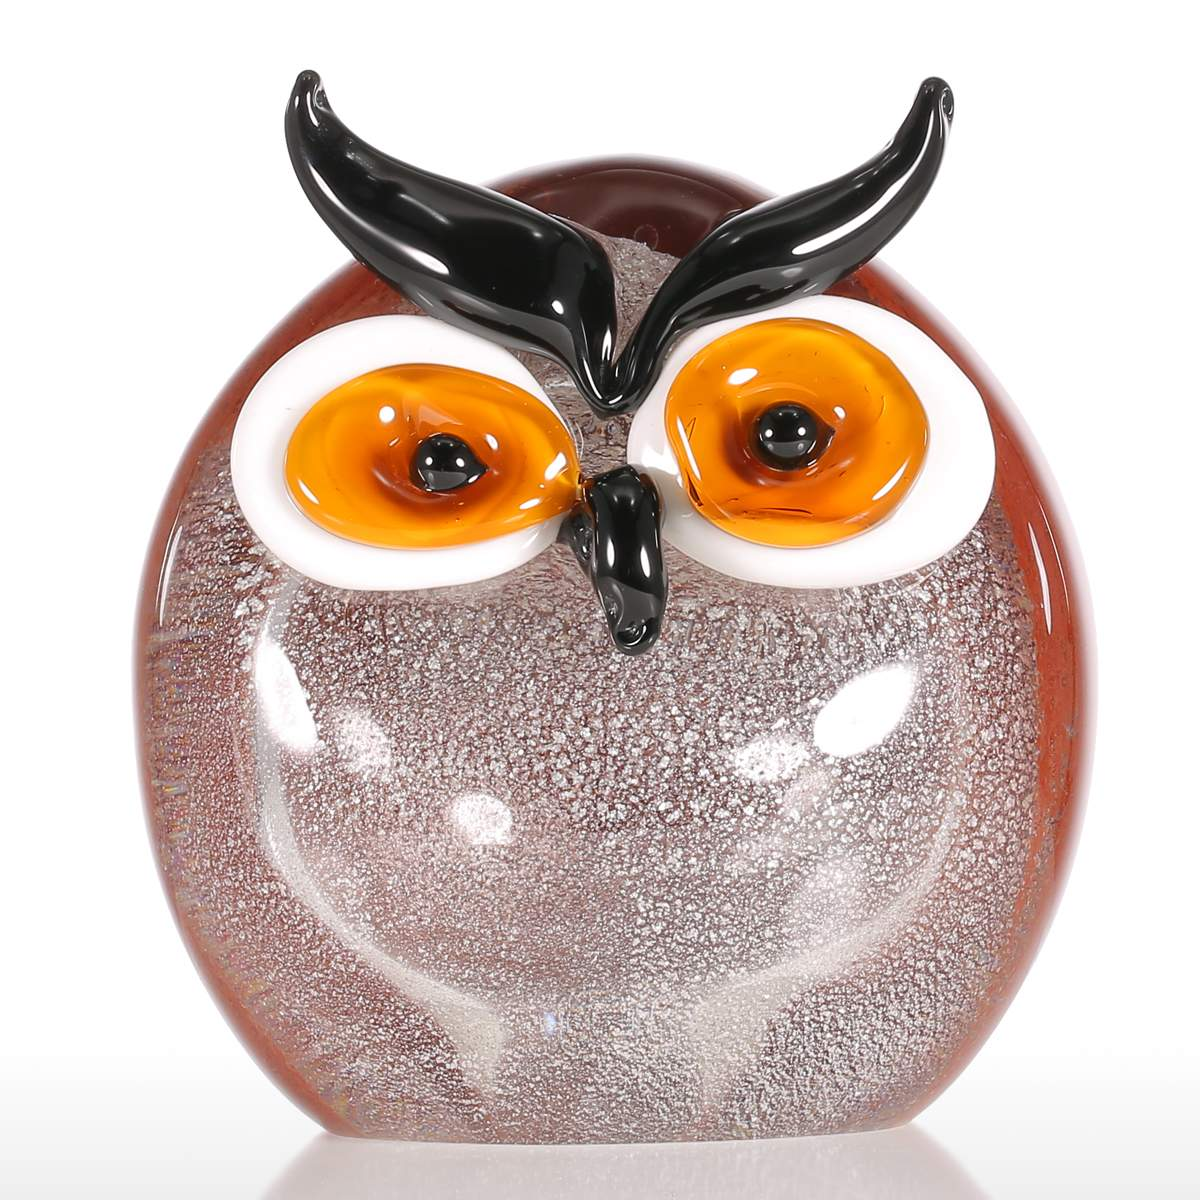 Glass animal ornaments - Tooarts Chubby Owl Glass Ornament Animal Figurine Handblown Home Decor Multicolor Model Decorative Office Decoration Craft